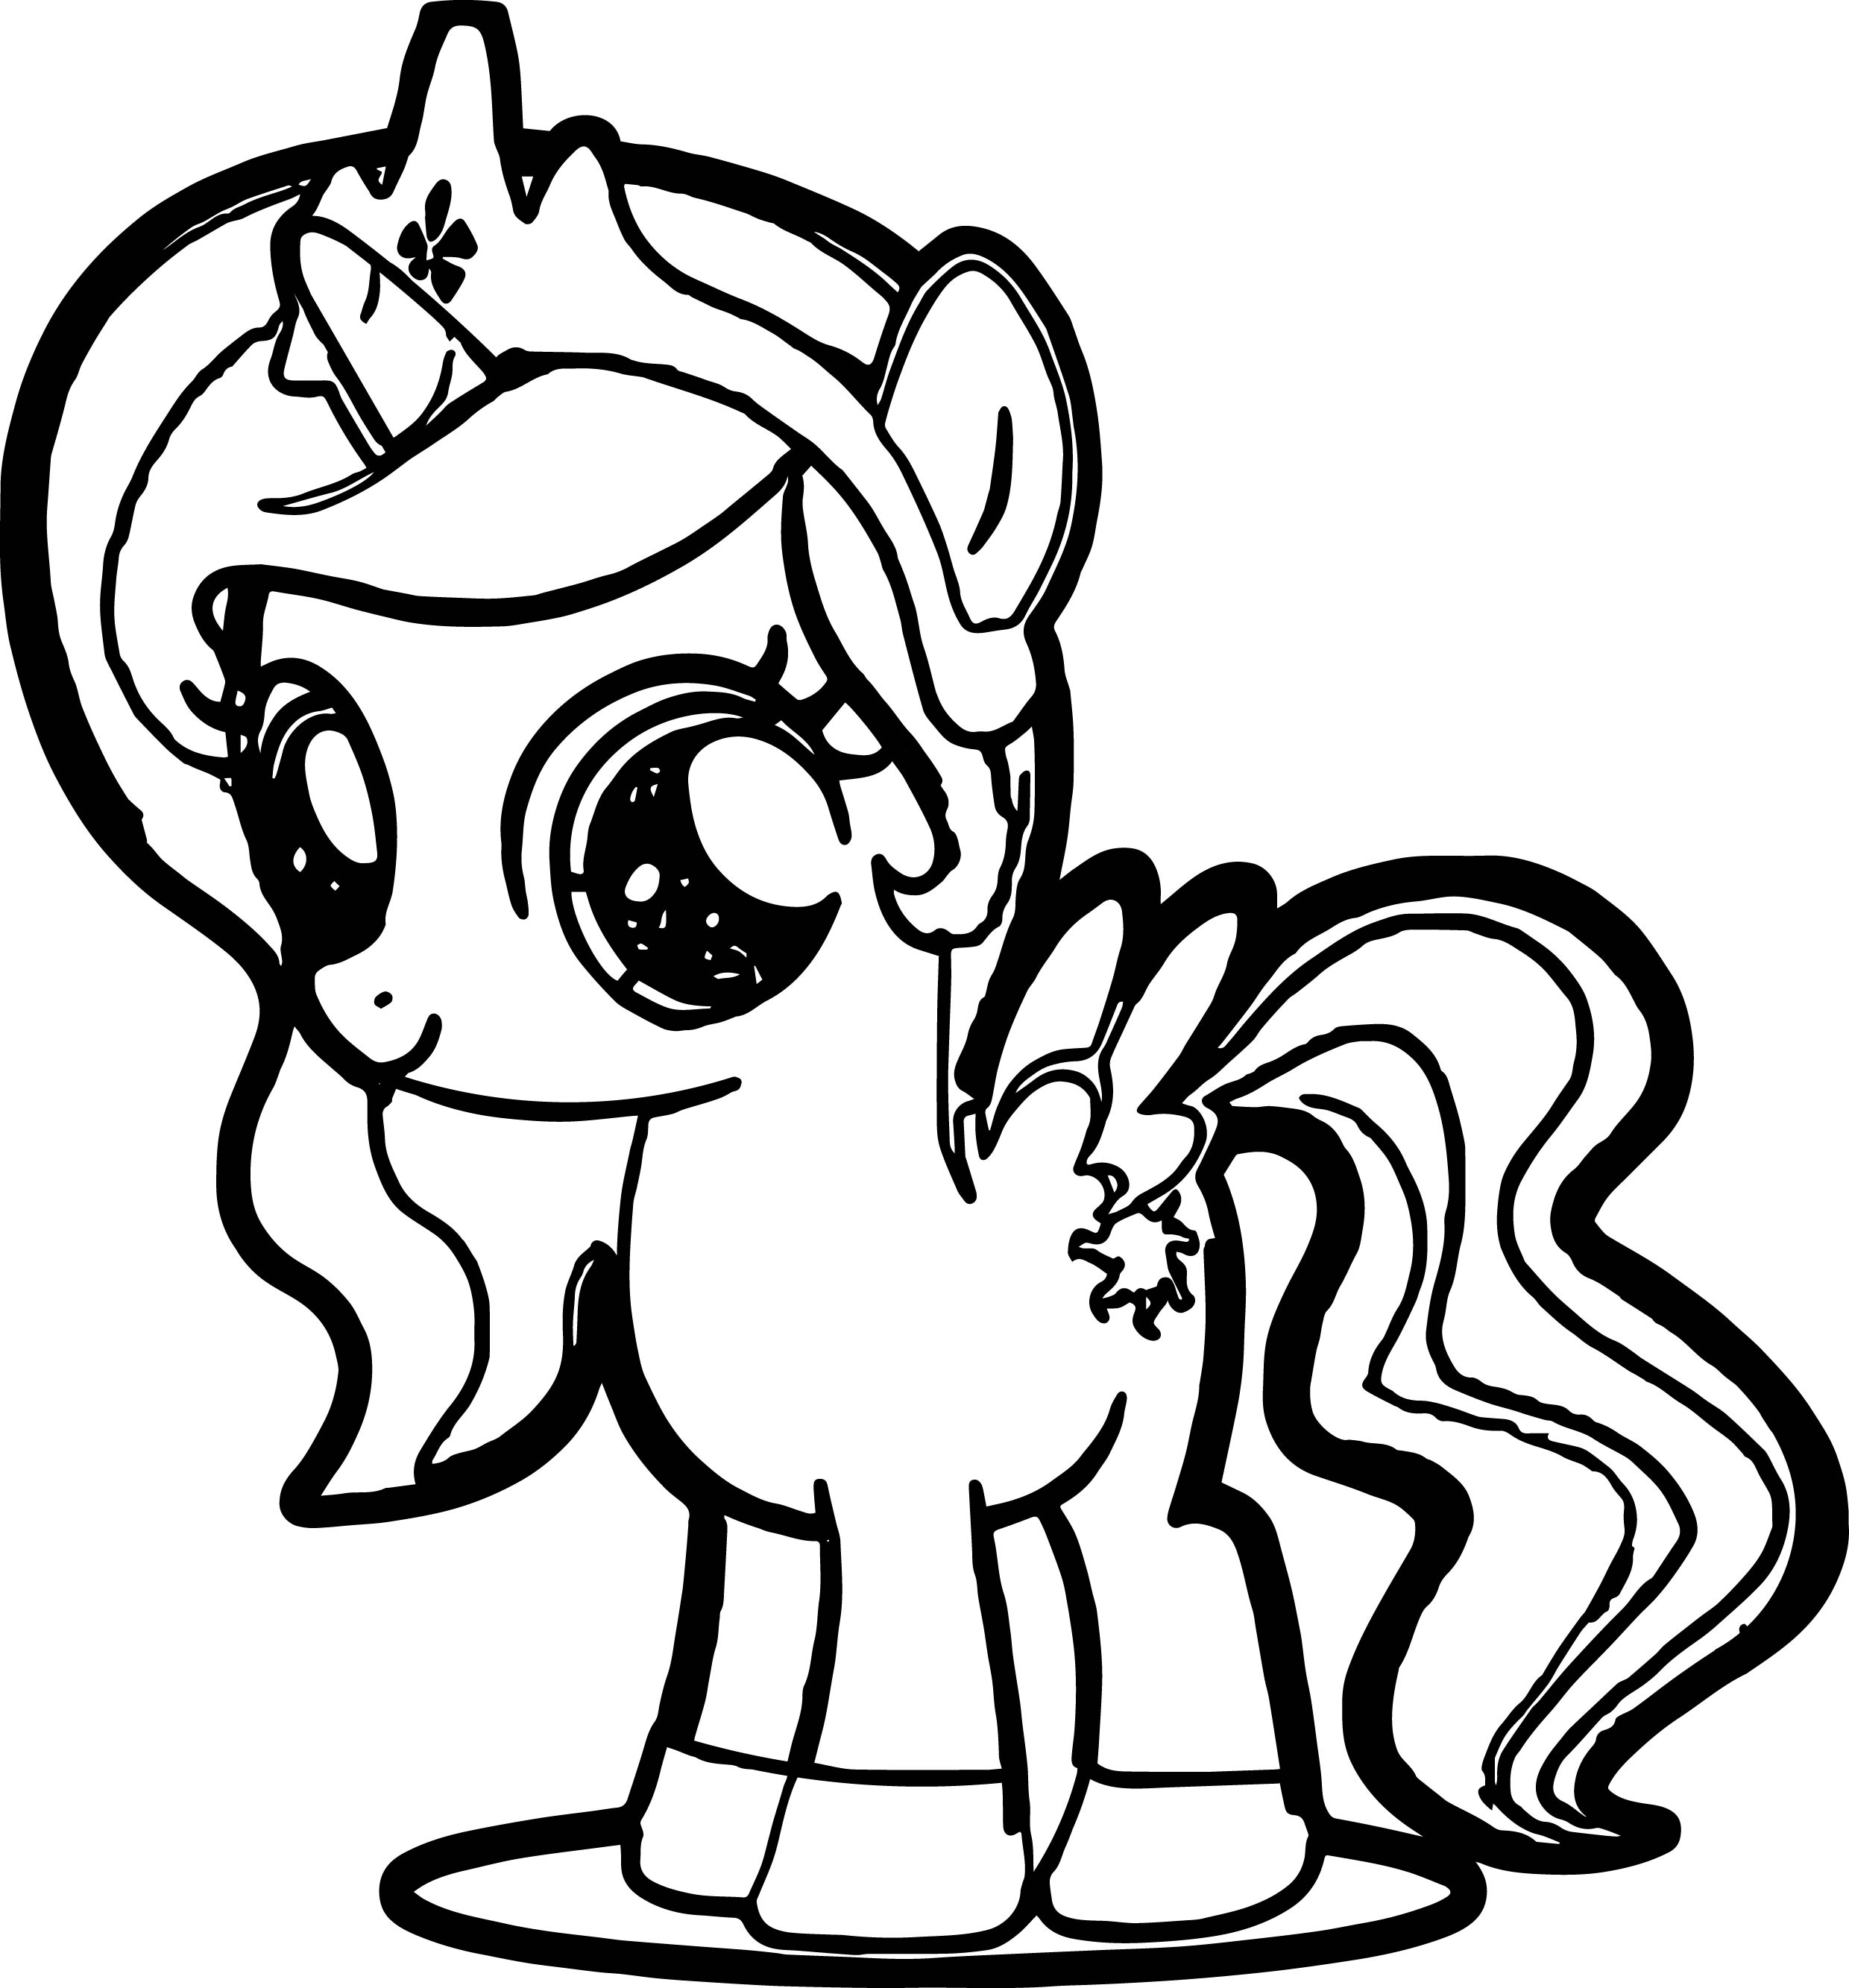 2480x2667 Little Pony Coloring Pages Cute Pony Coloring Page Wecoloringpage